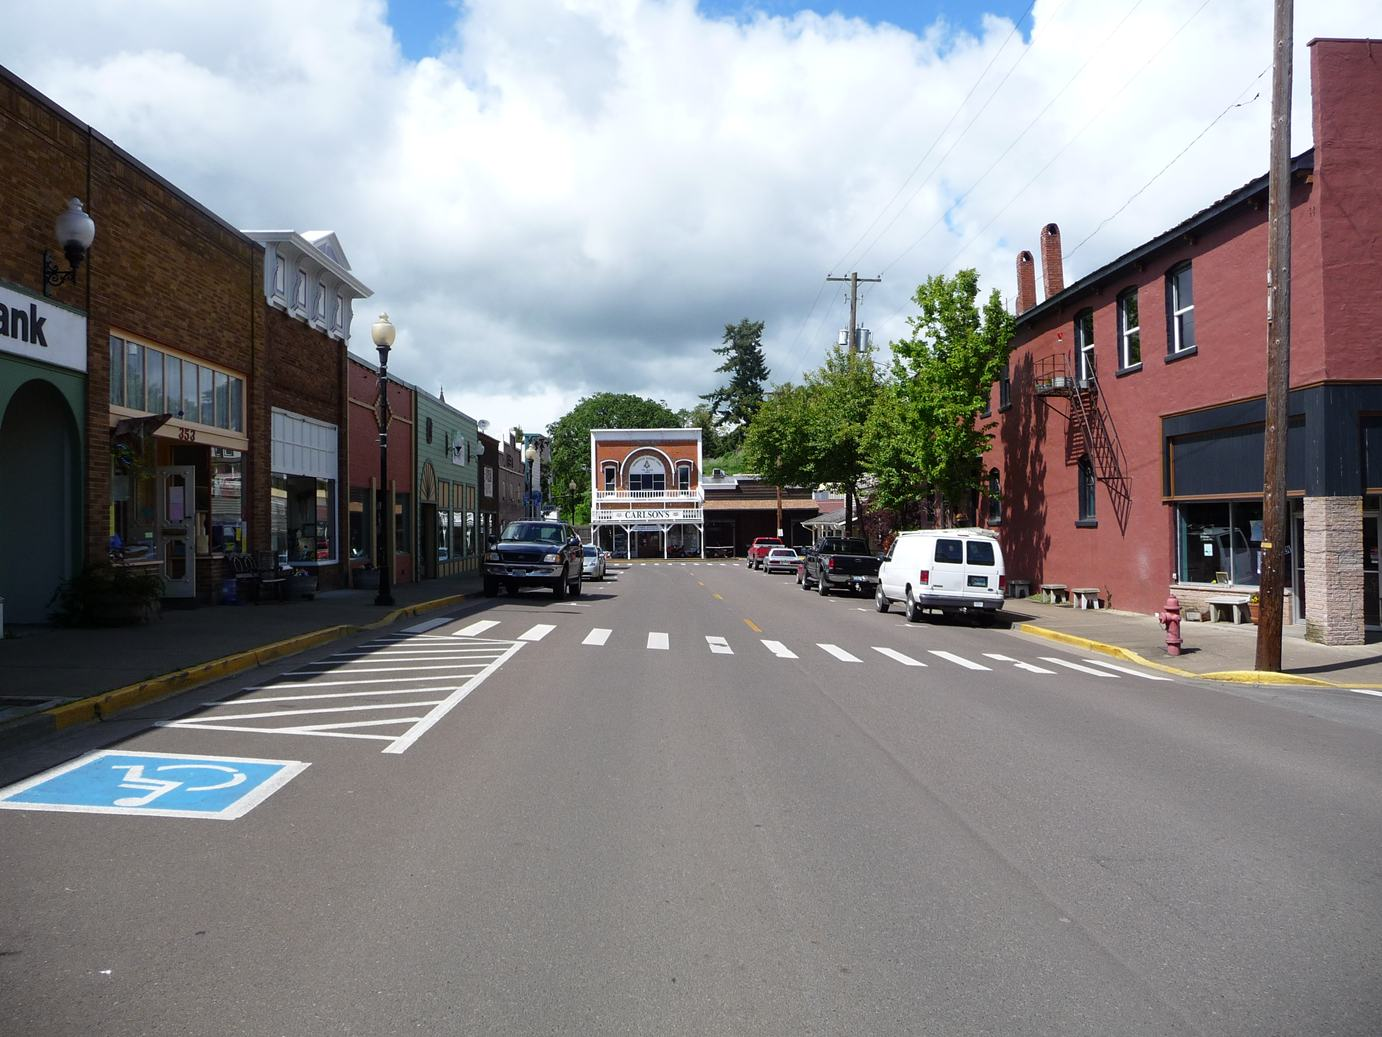 View of Main Street looking North in Brownsville Oregon.  Photo taken in May of 2010